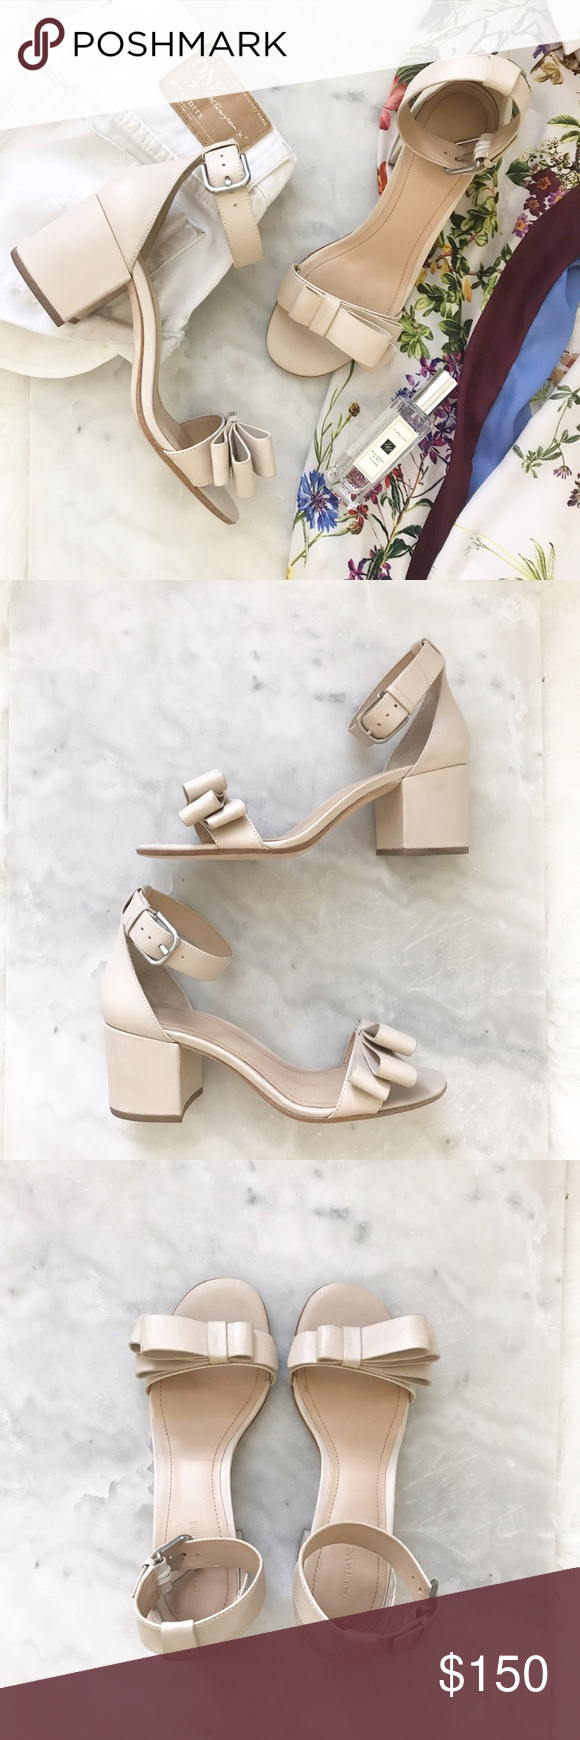 20059ff3f74 Pour La Victoire Nude block heel sandals   asymmetrical bow at toe strap    wrapped chunky